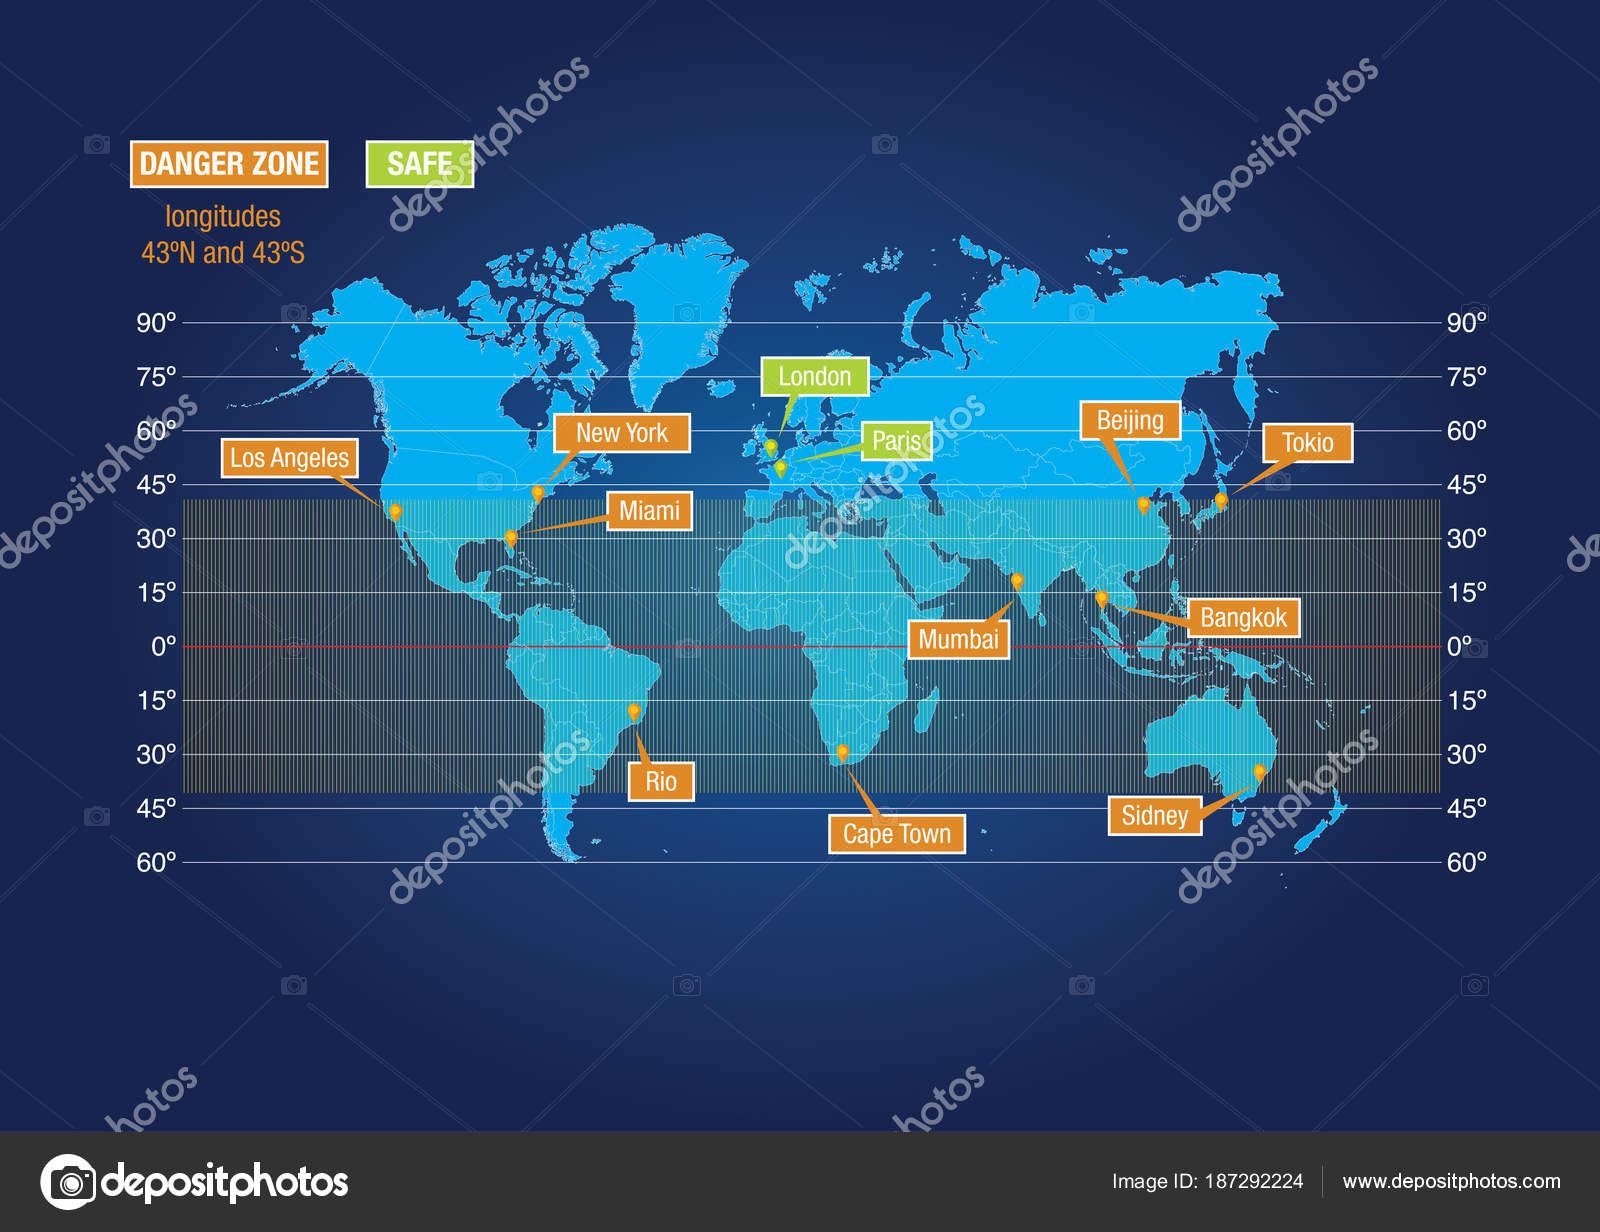 Map showing risk zone china tiangong space station crash earth map showing risk zone china tiangong space station crash earth stock vector gumiabroncs Choice Image